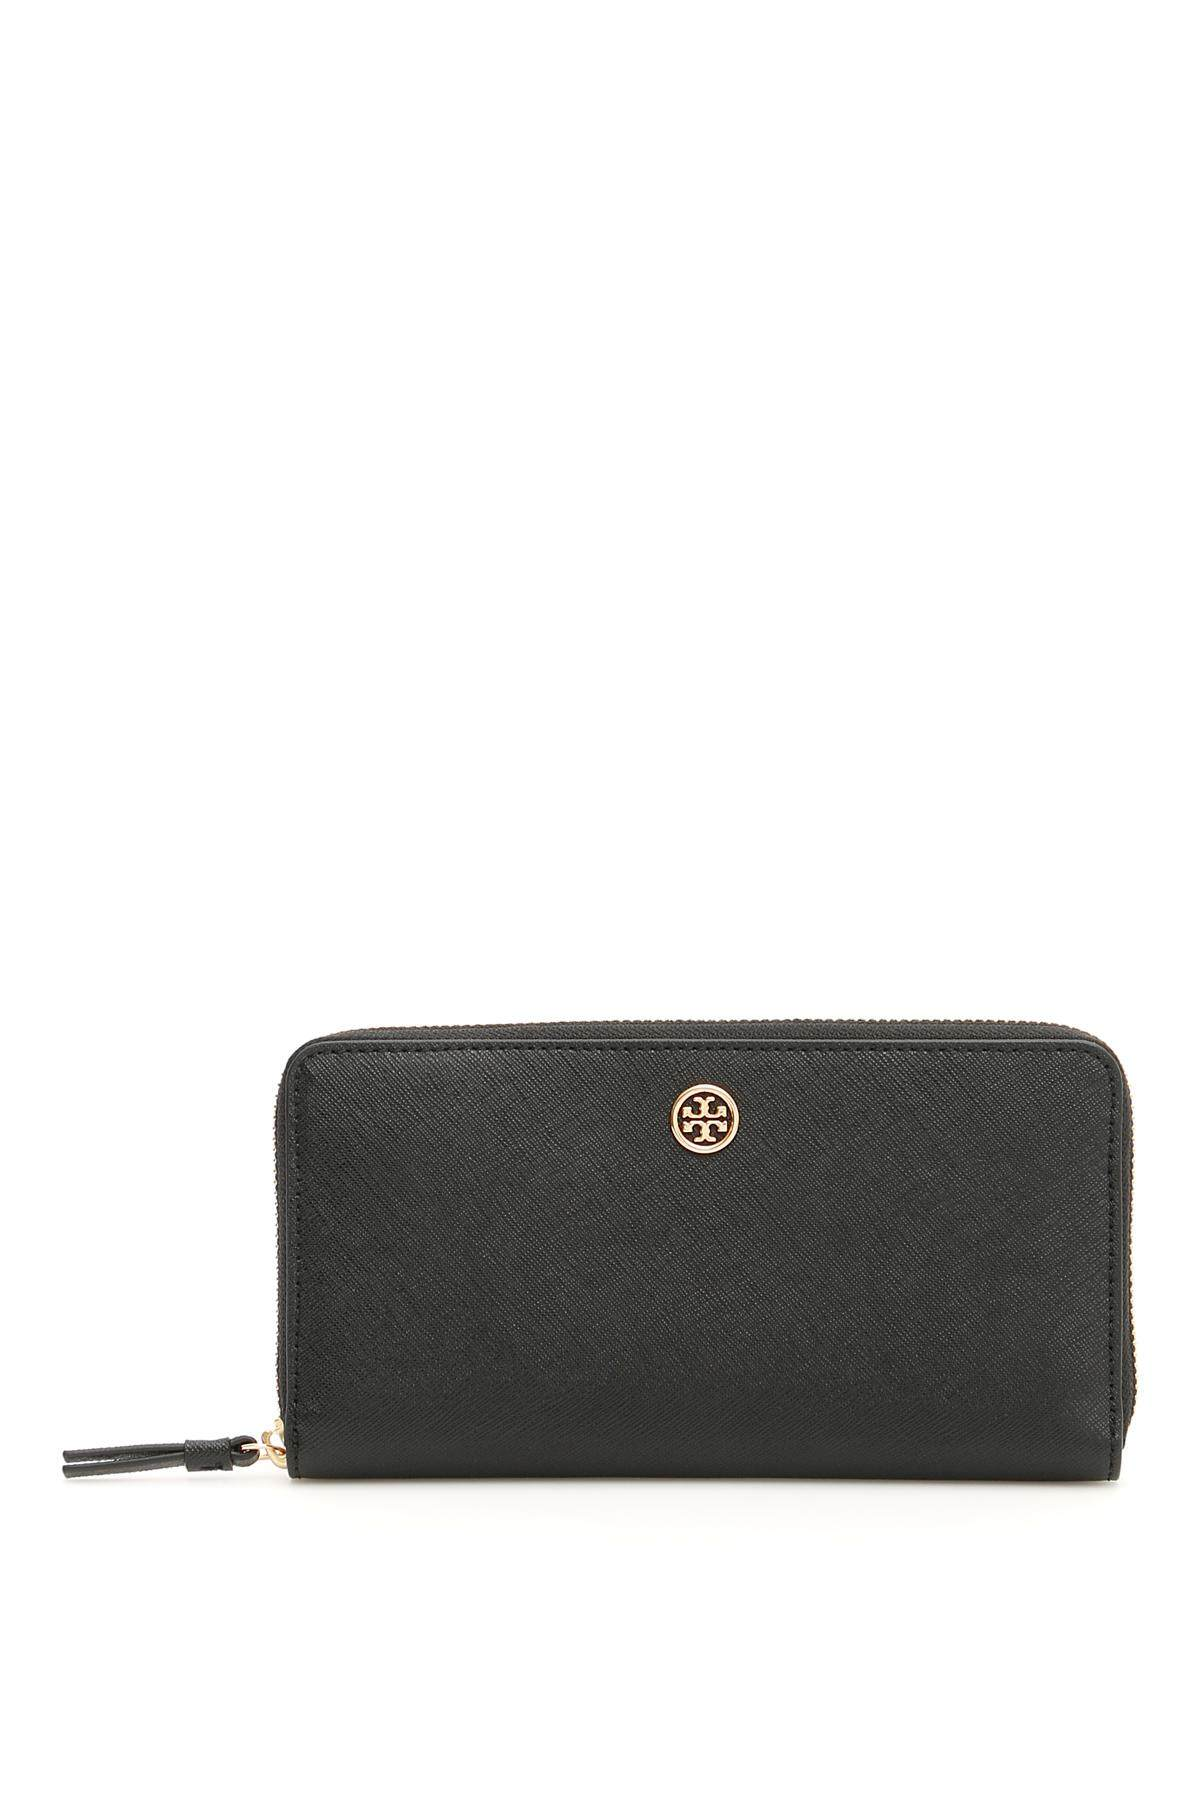 Tory Burch - Robinson Wallet